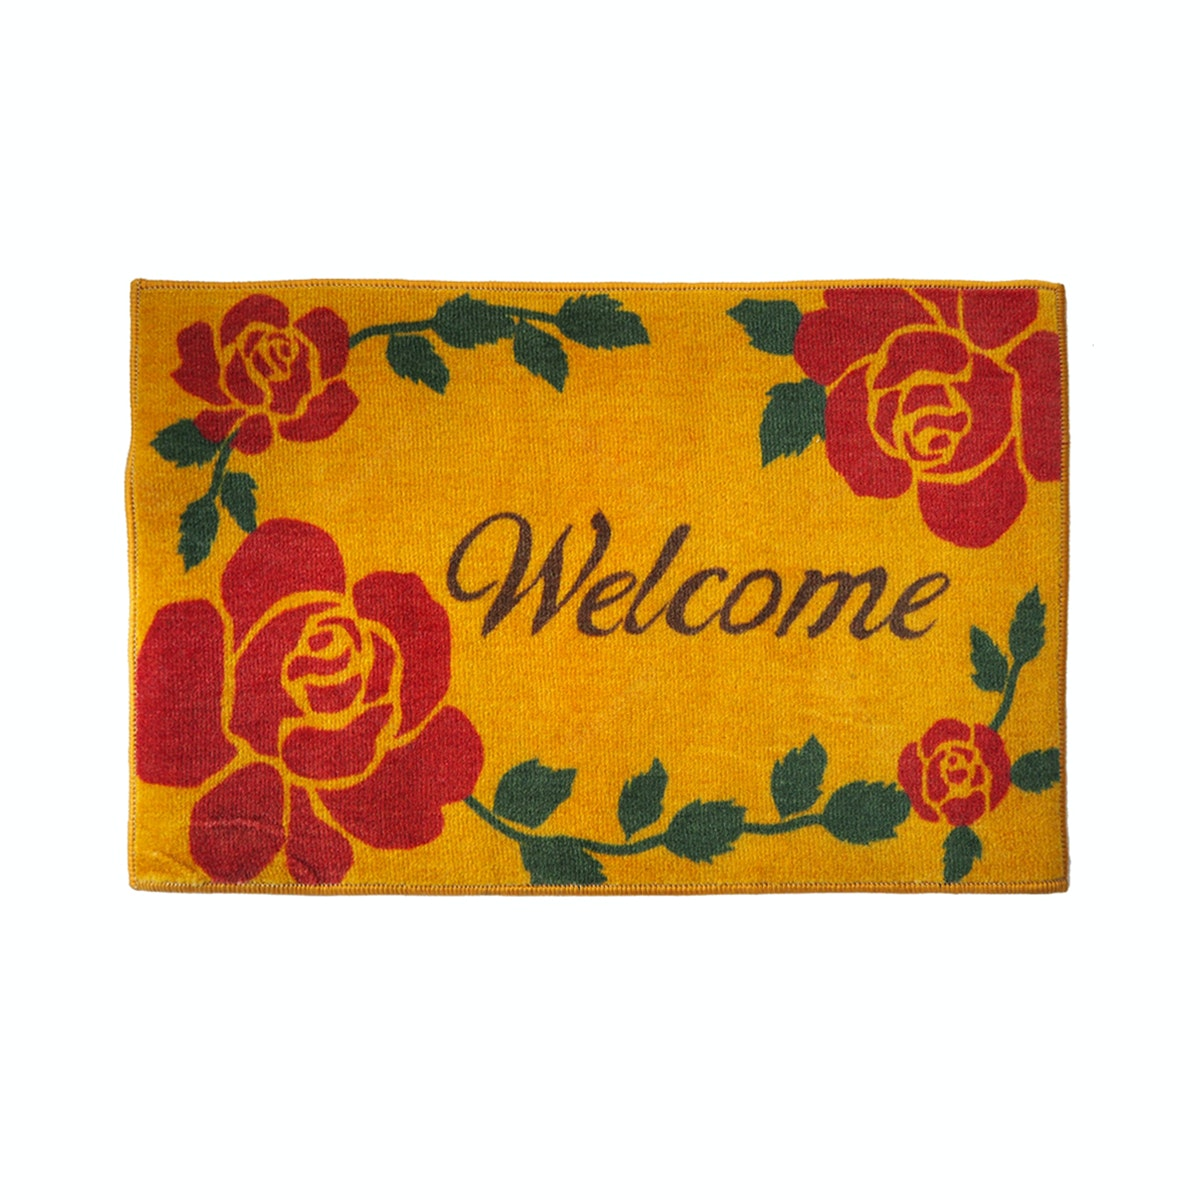 Lanamora Keset Anti Slip Doormat Welcome - Yellow